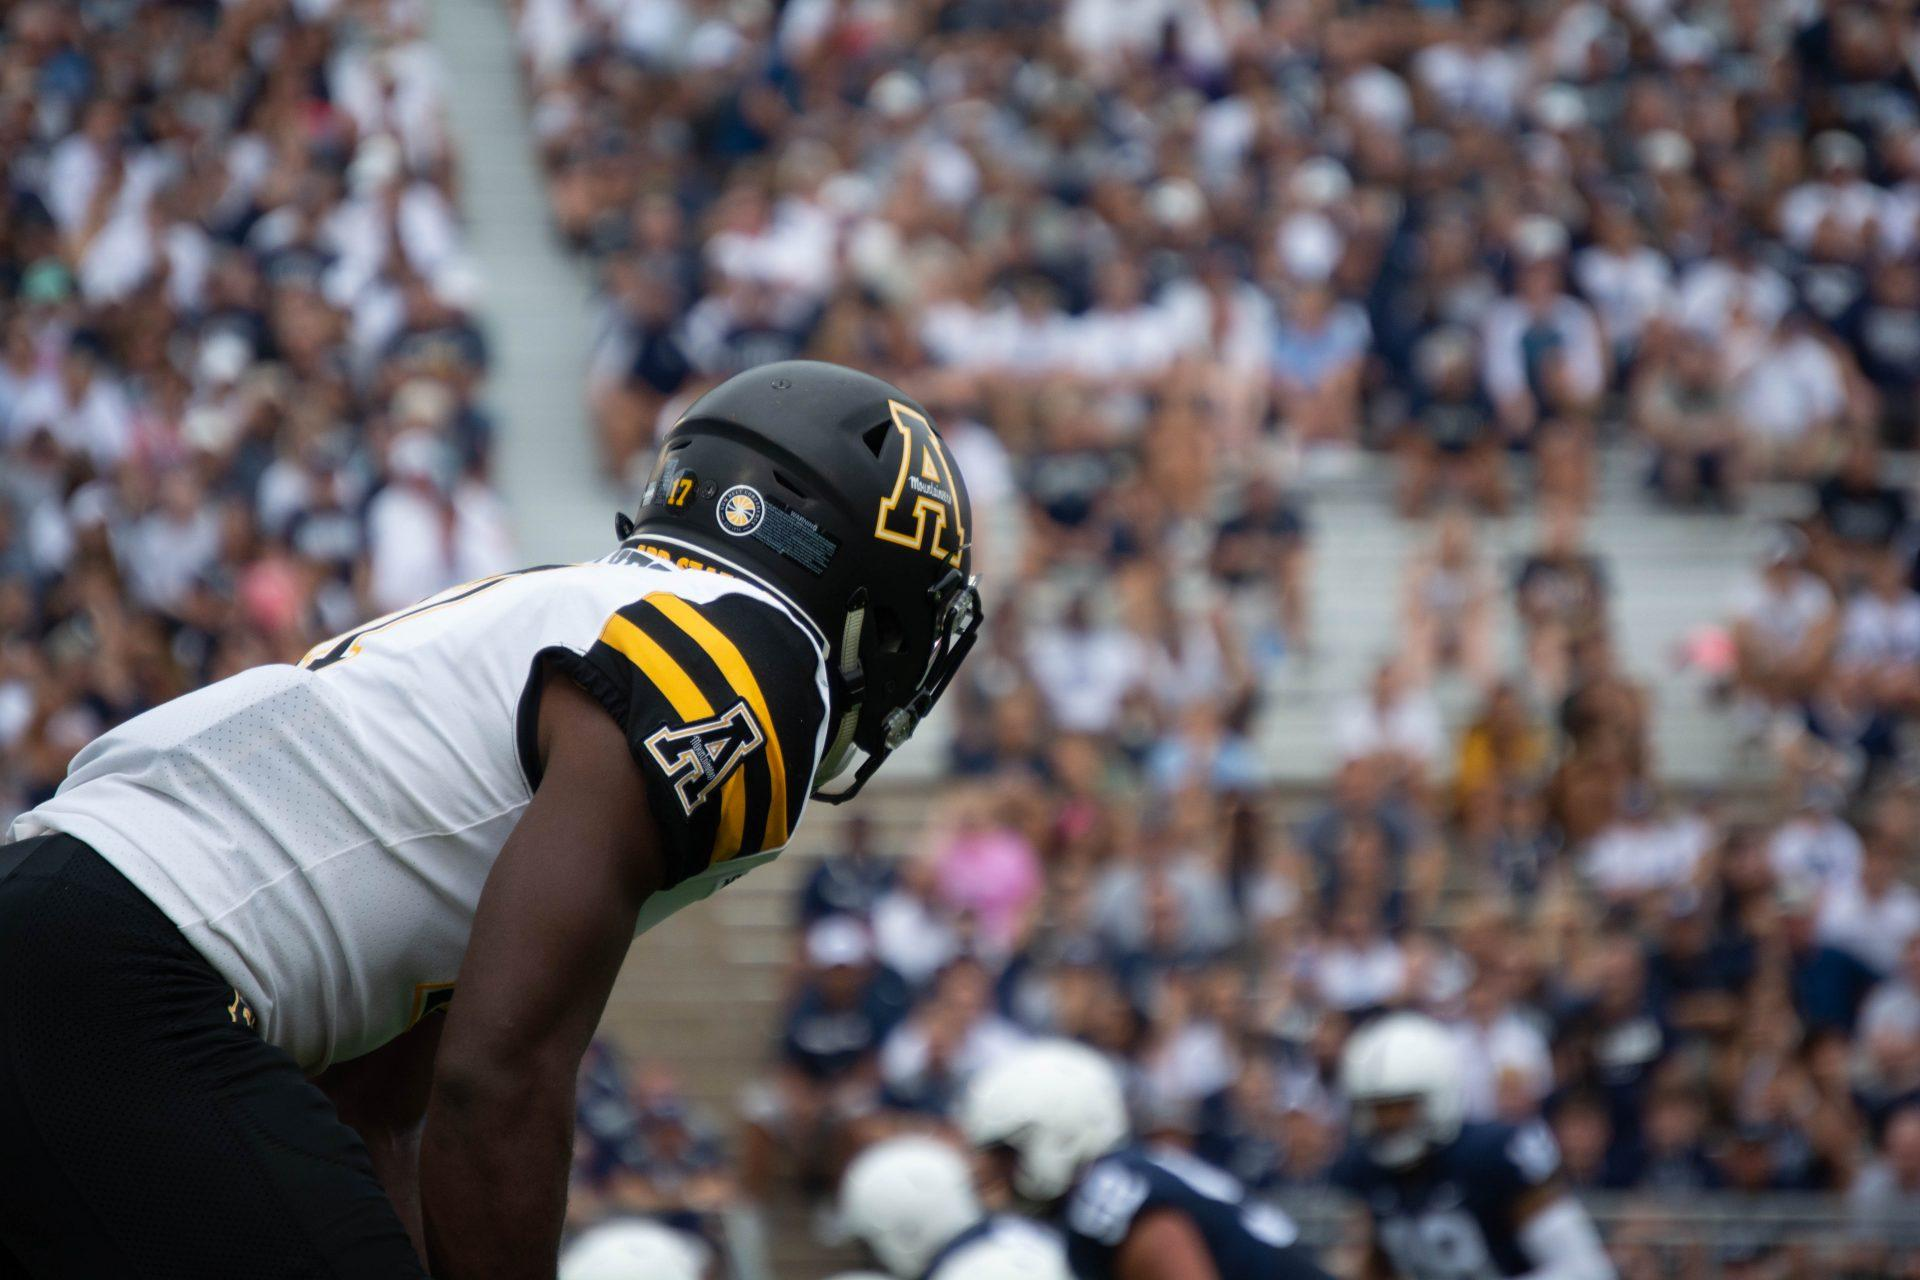 Senior cornerback Tae Hayes gets ready for the next play against Penn State. App State lost to the Nittany Lions 45-38.